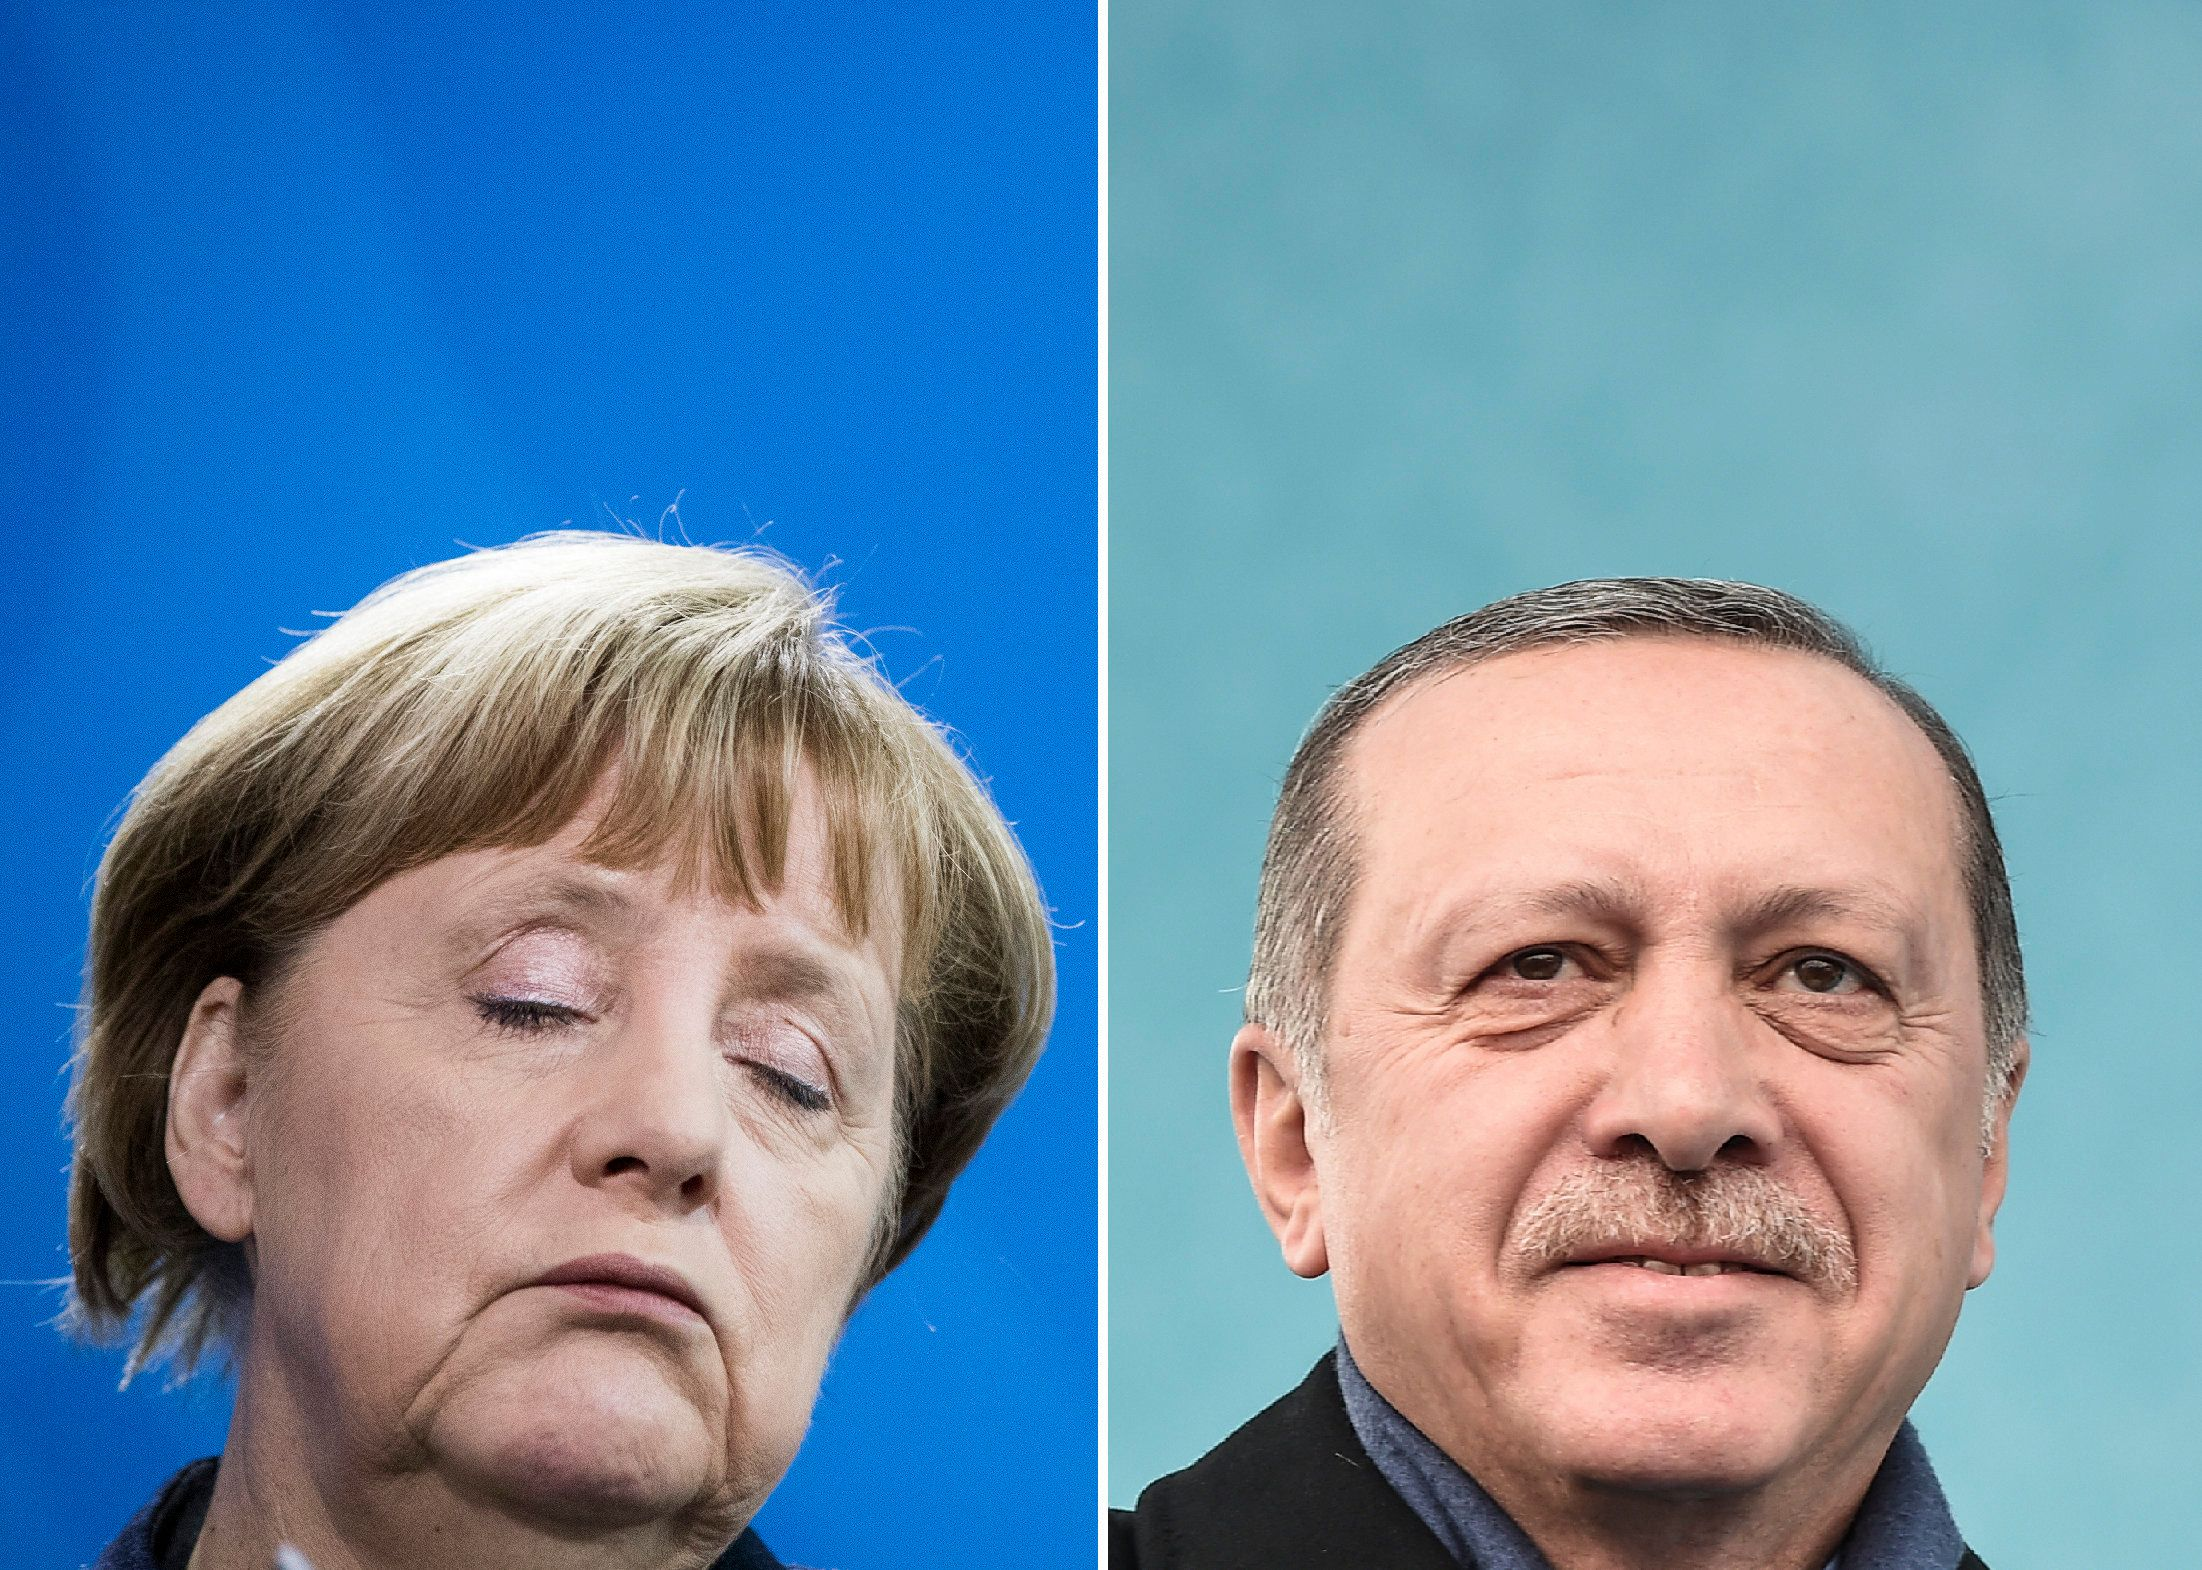 Merkel just slapped German Turks in the face and gave Erdoğan a win.